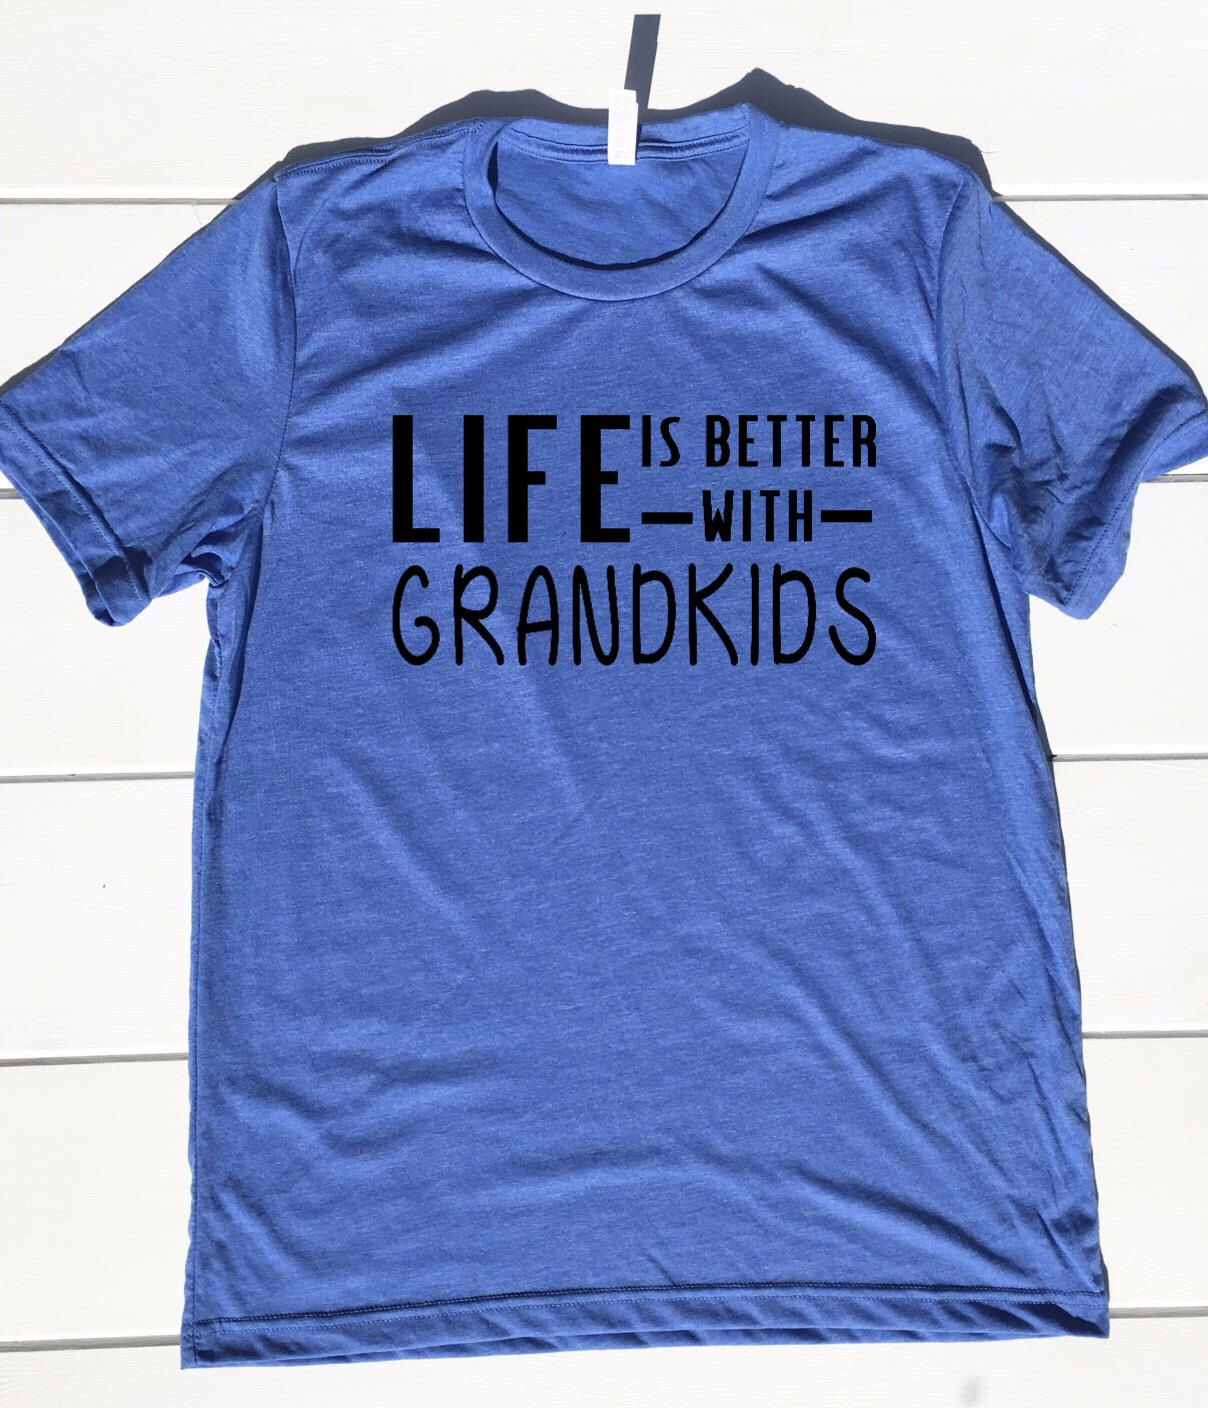 Grandpa Shirt, Better with Grandkids, Gifts for Grandpa, Grandpa tshirt, funny grandpa gifts, grandpa birthday gifts, grandpa birthday shirt